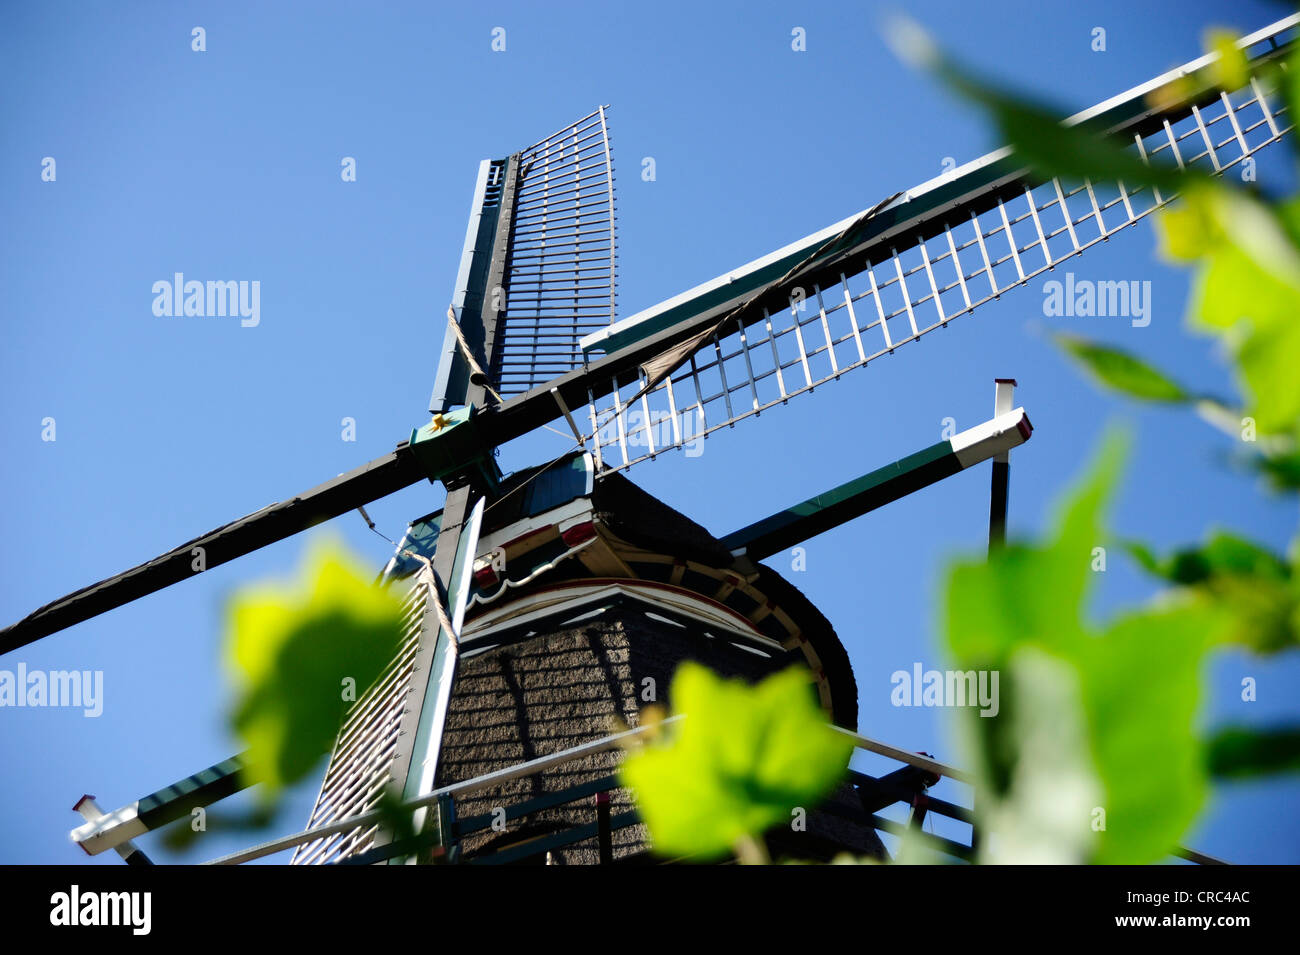 De Gooyer windmill on the Funenkade, Amsterdam Oost, Noord-Holland, North Holland, the Netherlands, Europe - Stock Image